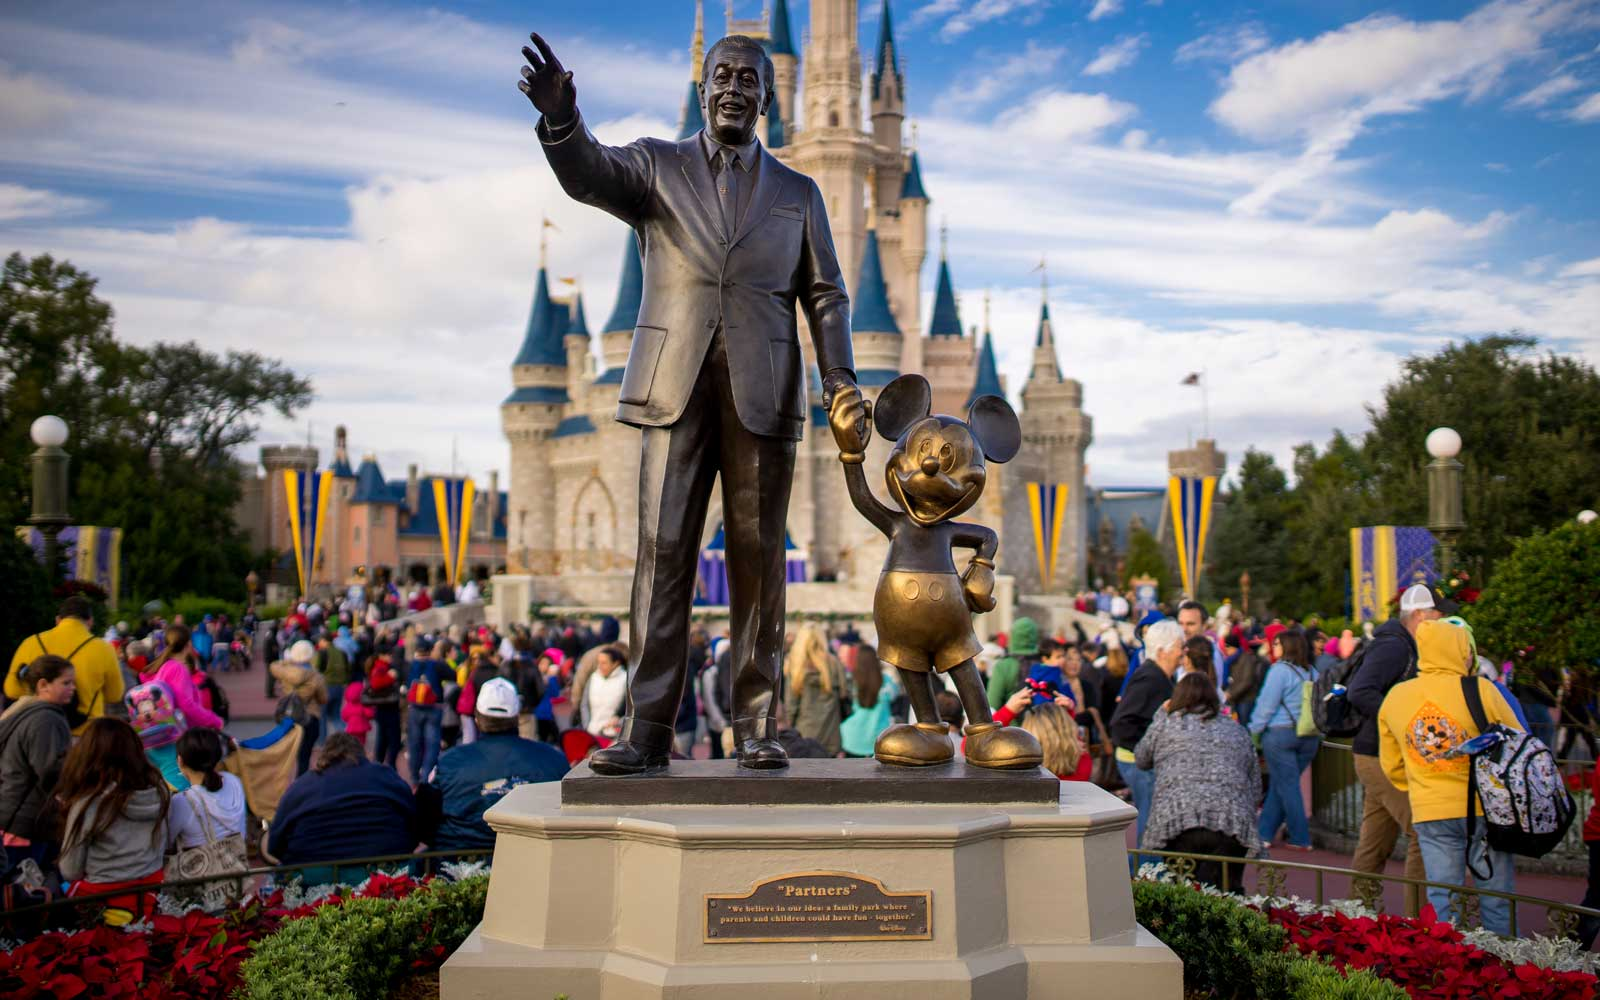 A Woman in Florida Was Caught Selling Fake Disney World Tickets — Here's How to Avoid Scams